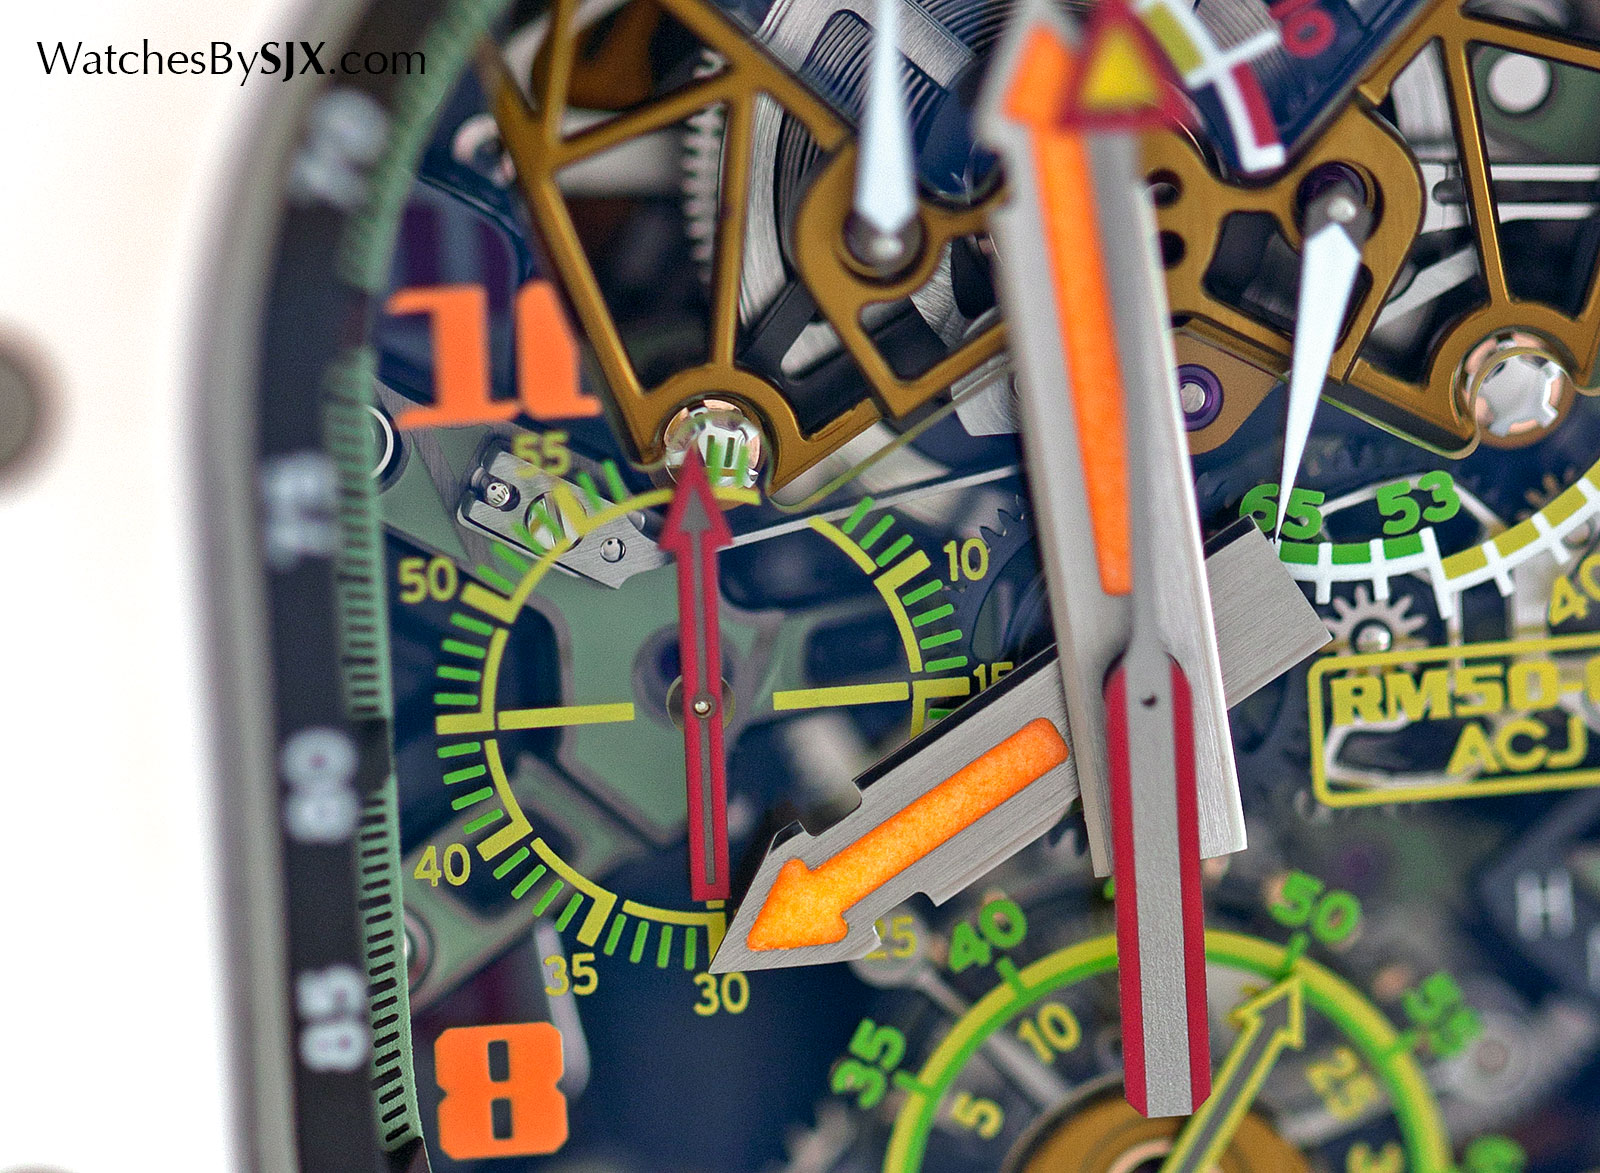 Richard Mille RM 50-02 ACJ Tourbillon Split Seconds Chronograph 1